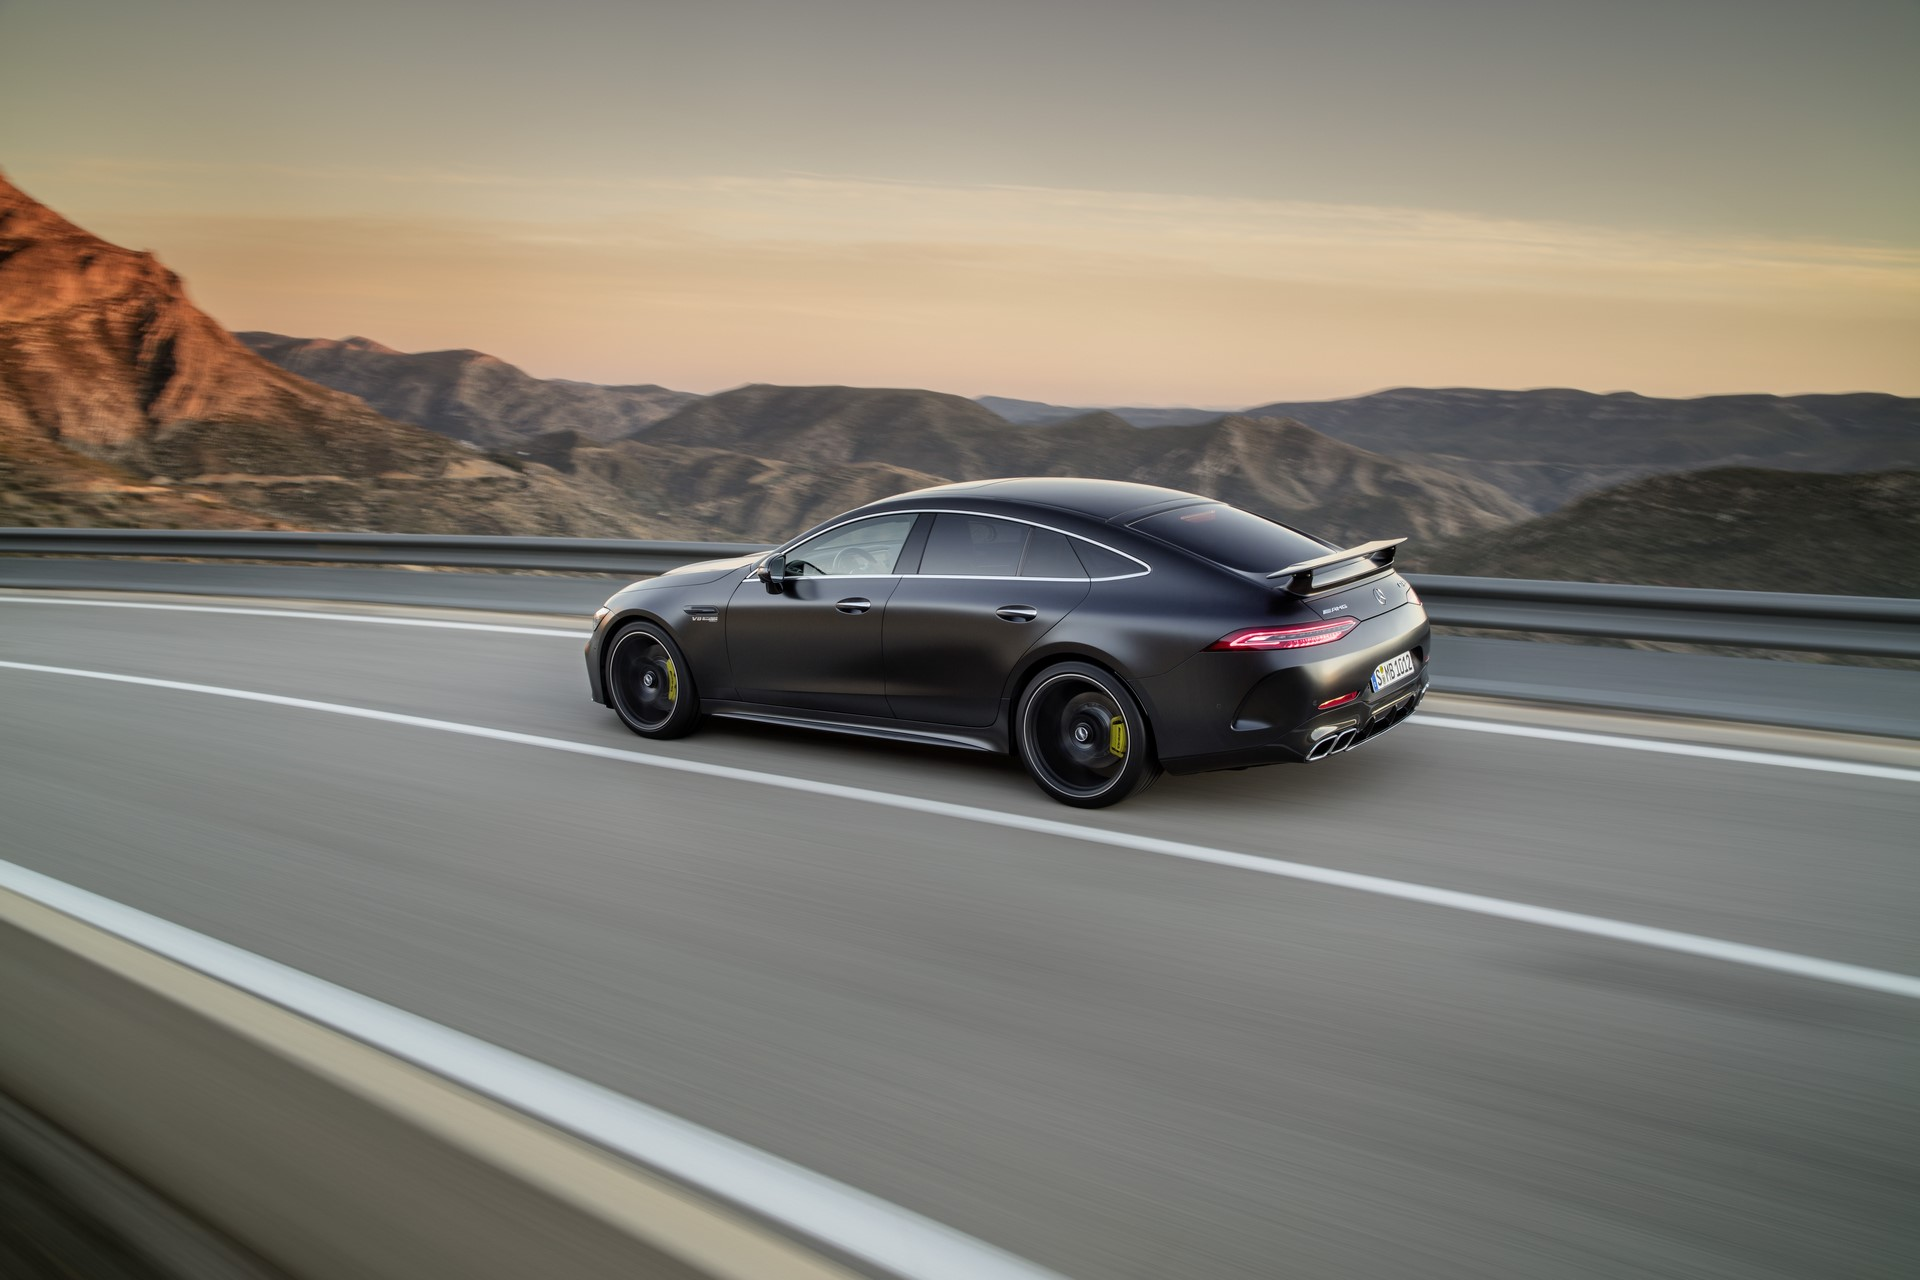 Mercedes-AMG GT 63 S 4MATIC+ 4-Türer Coupé